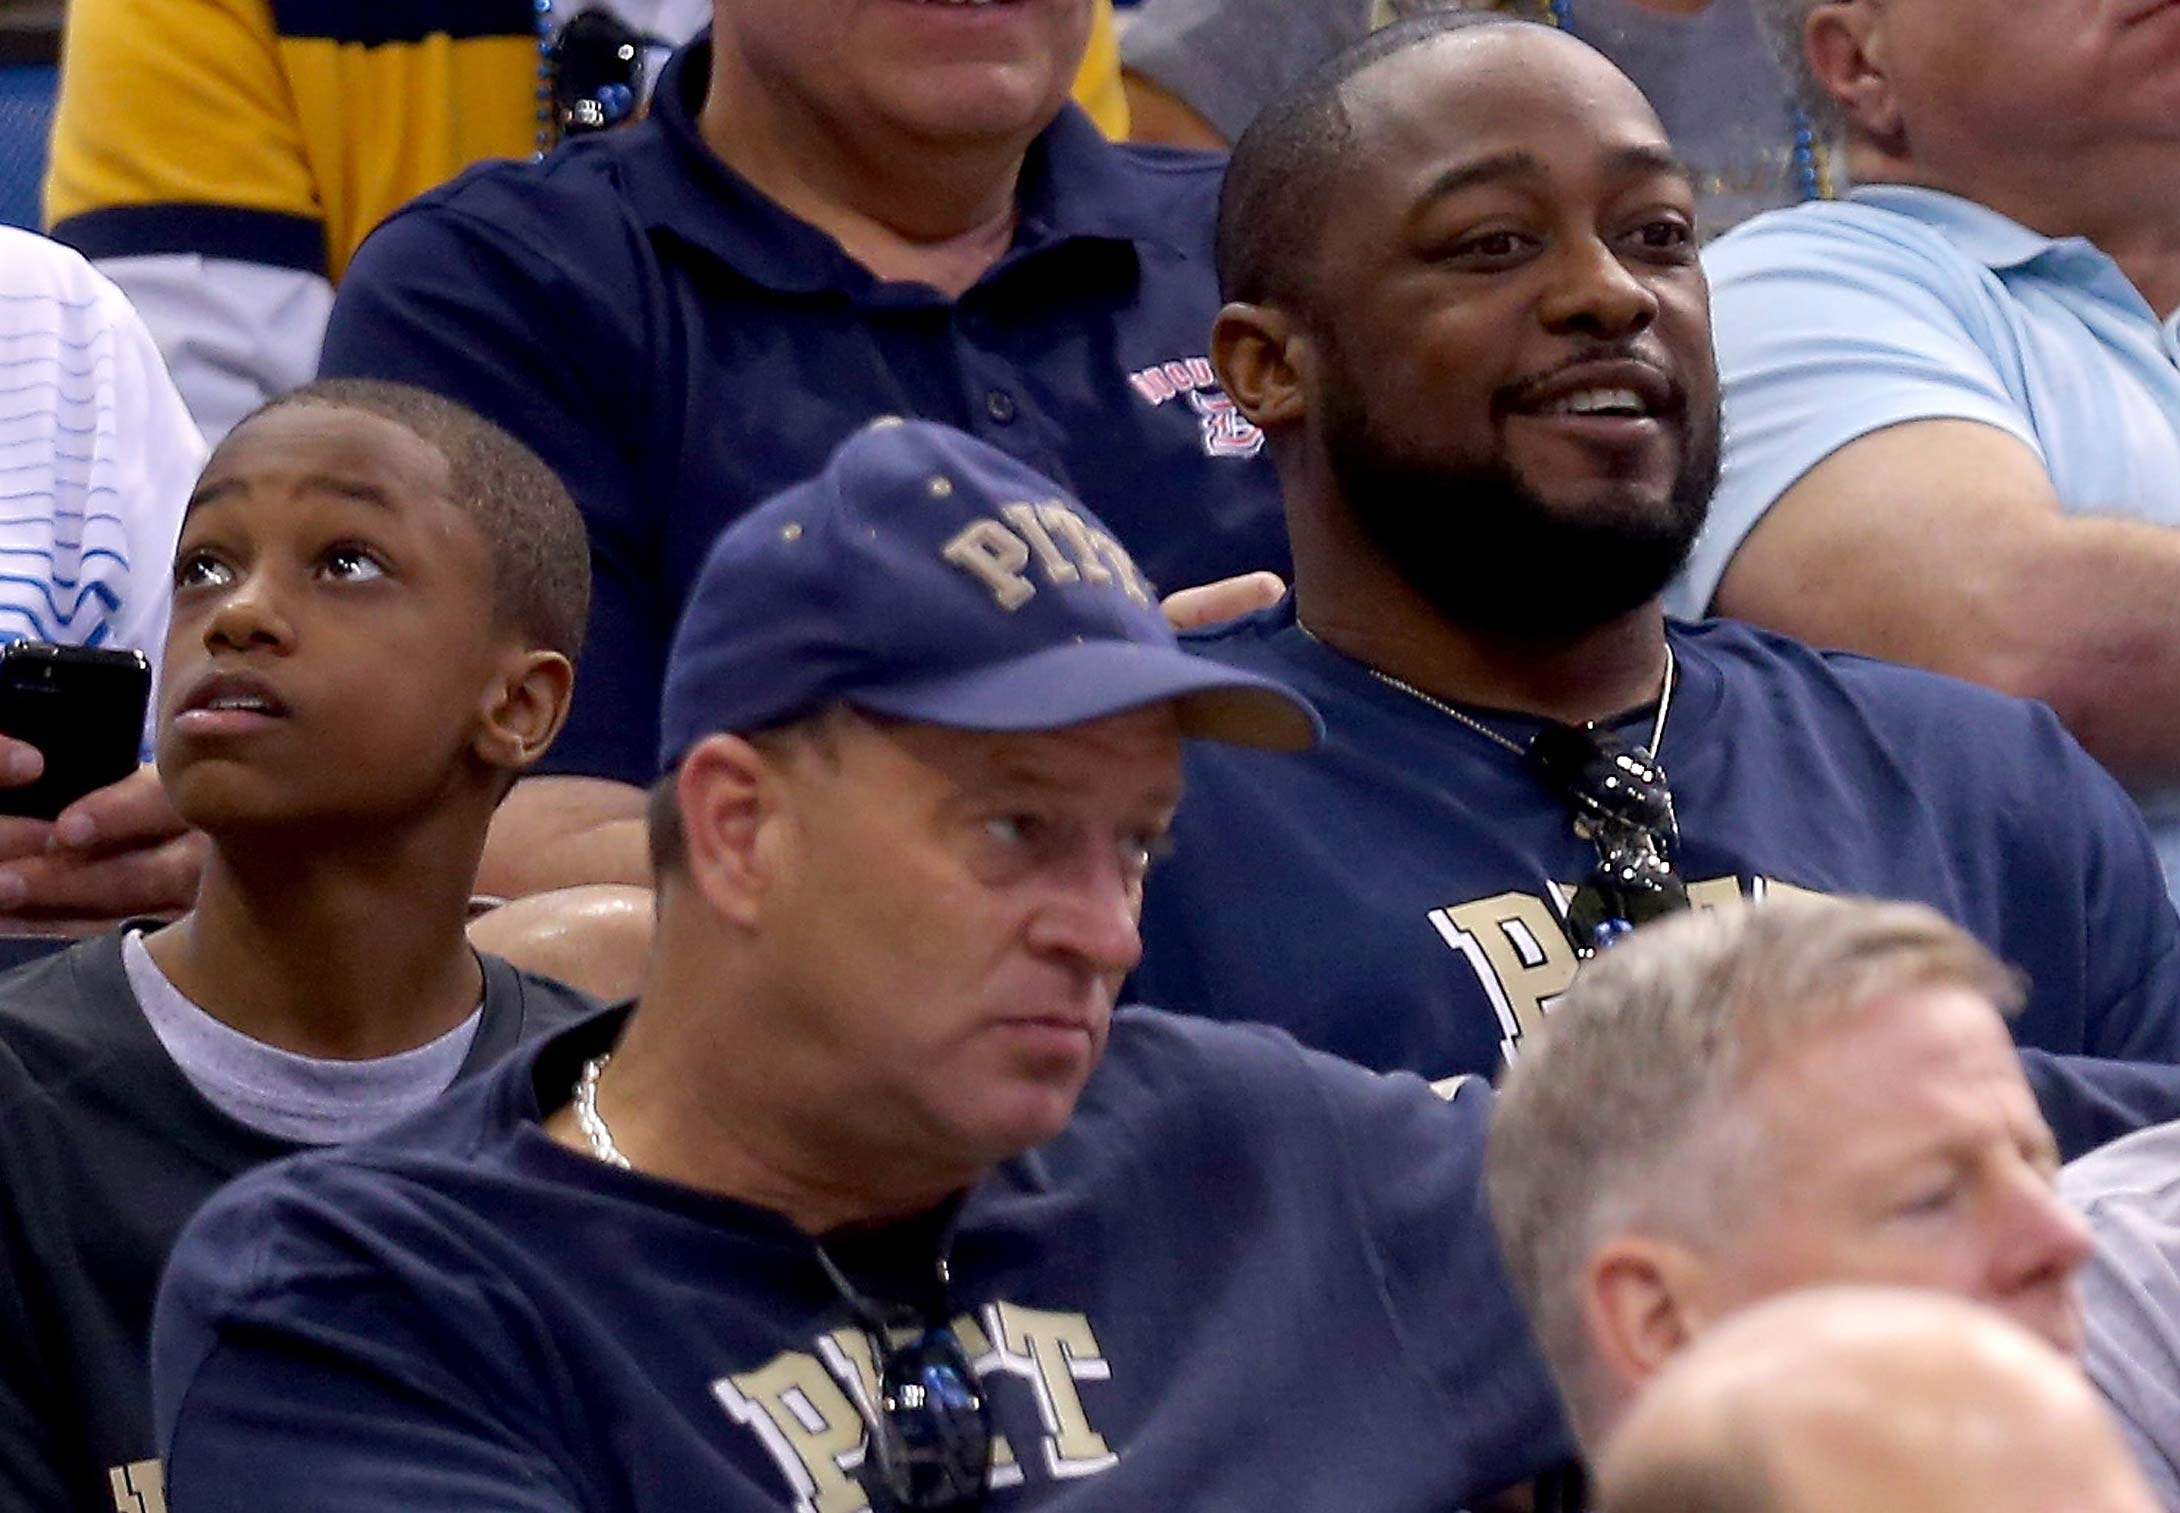 Pittsburgh Steelers head coach Mike Tomlin with his son as the Pitt Panthers take on the Florida Gators during the third round of the 2014 tournament at Amway Center in Orlando.